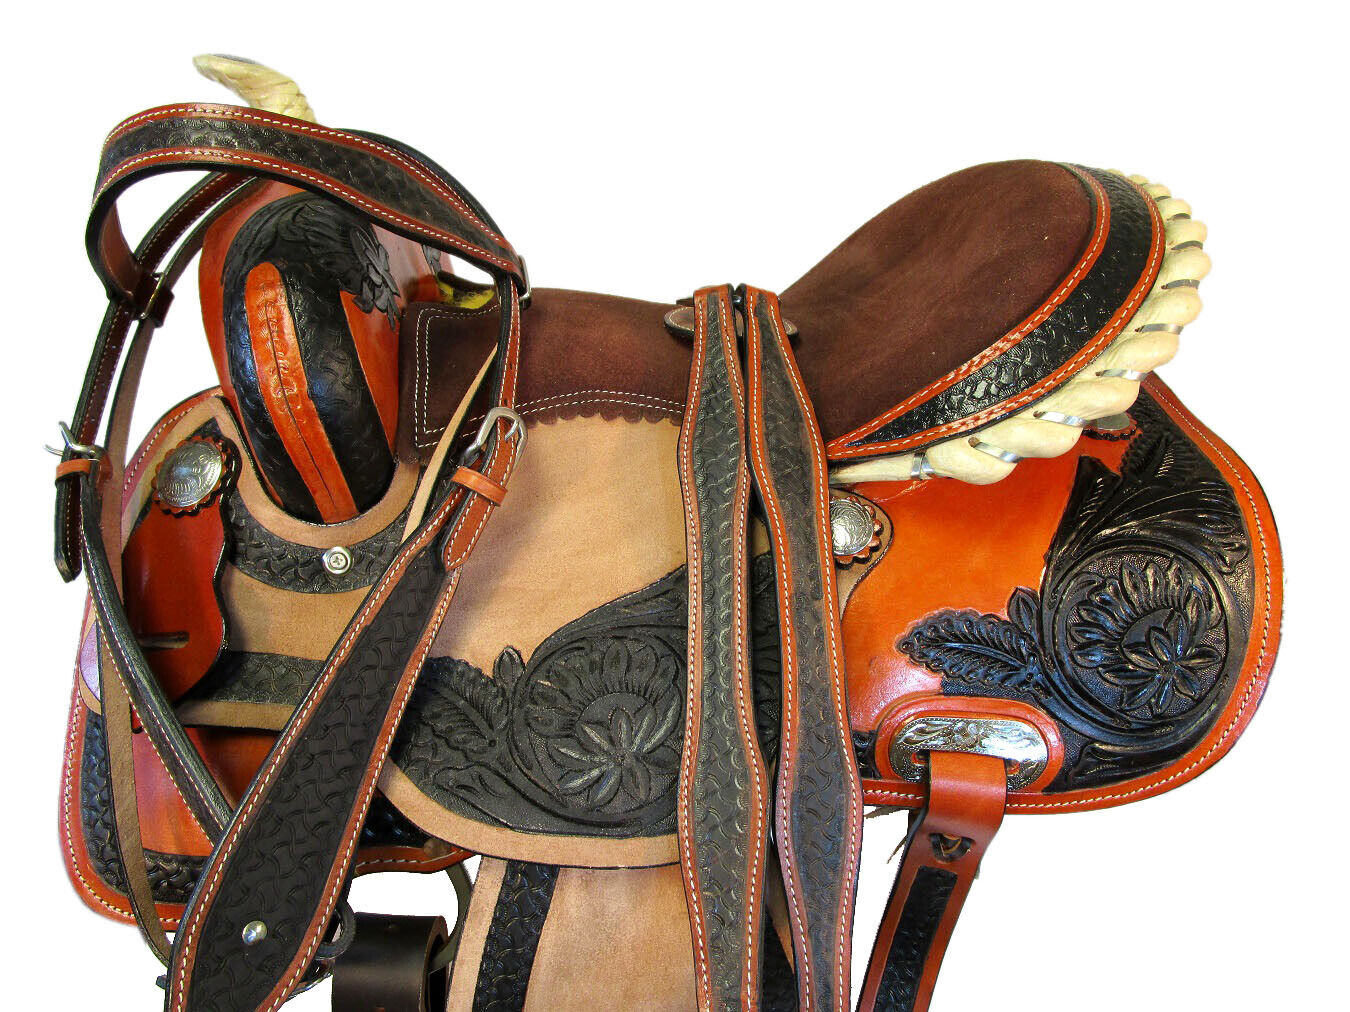 TOOLED LEATHER SHOW HORSE TRAIL PLEASURE PRO  WESTERN BARREL RACING SADDLE 15 16  fast delivery and free shipping on all orders